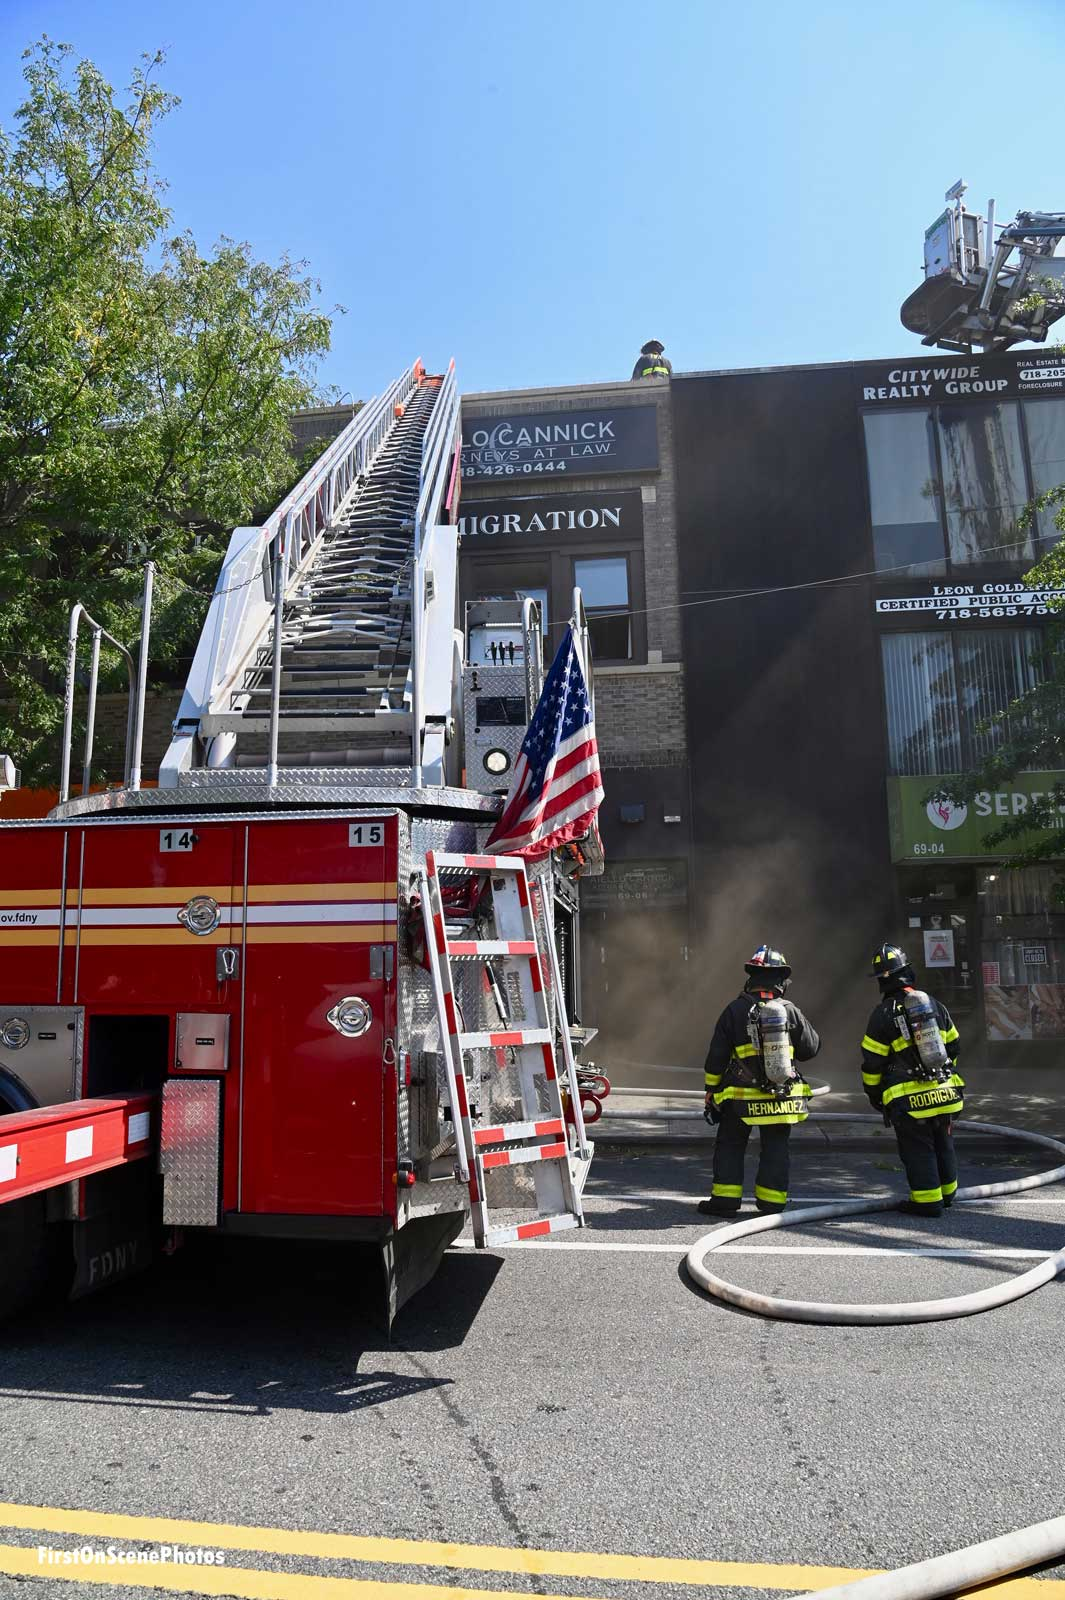 View of FDNY ladder set up to top of building